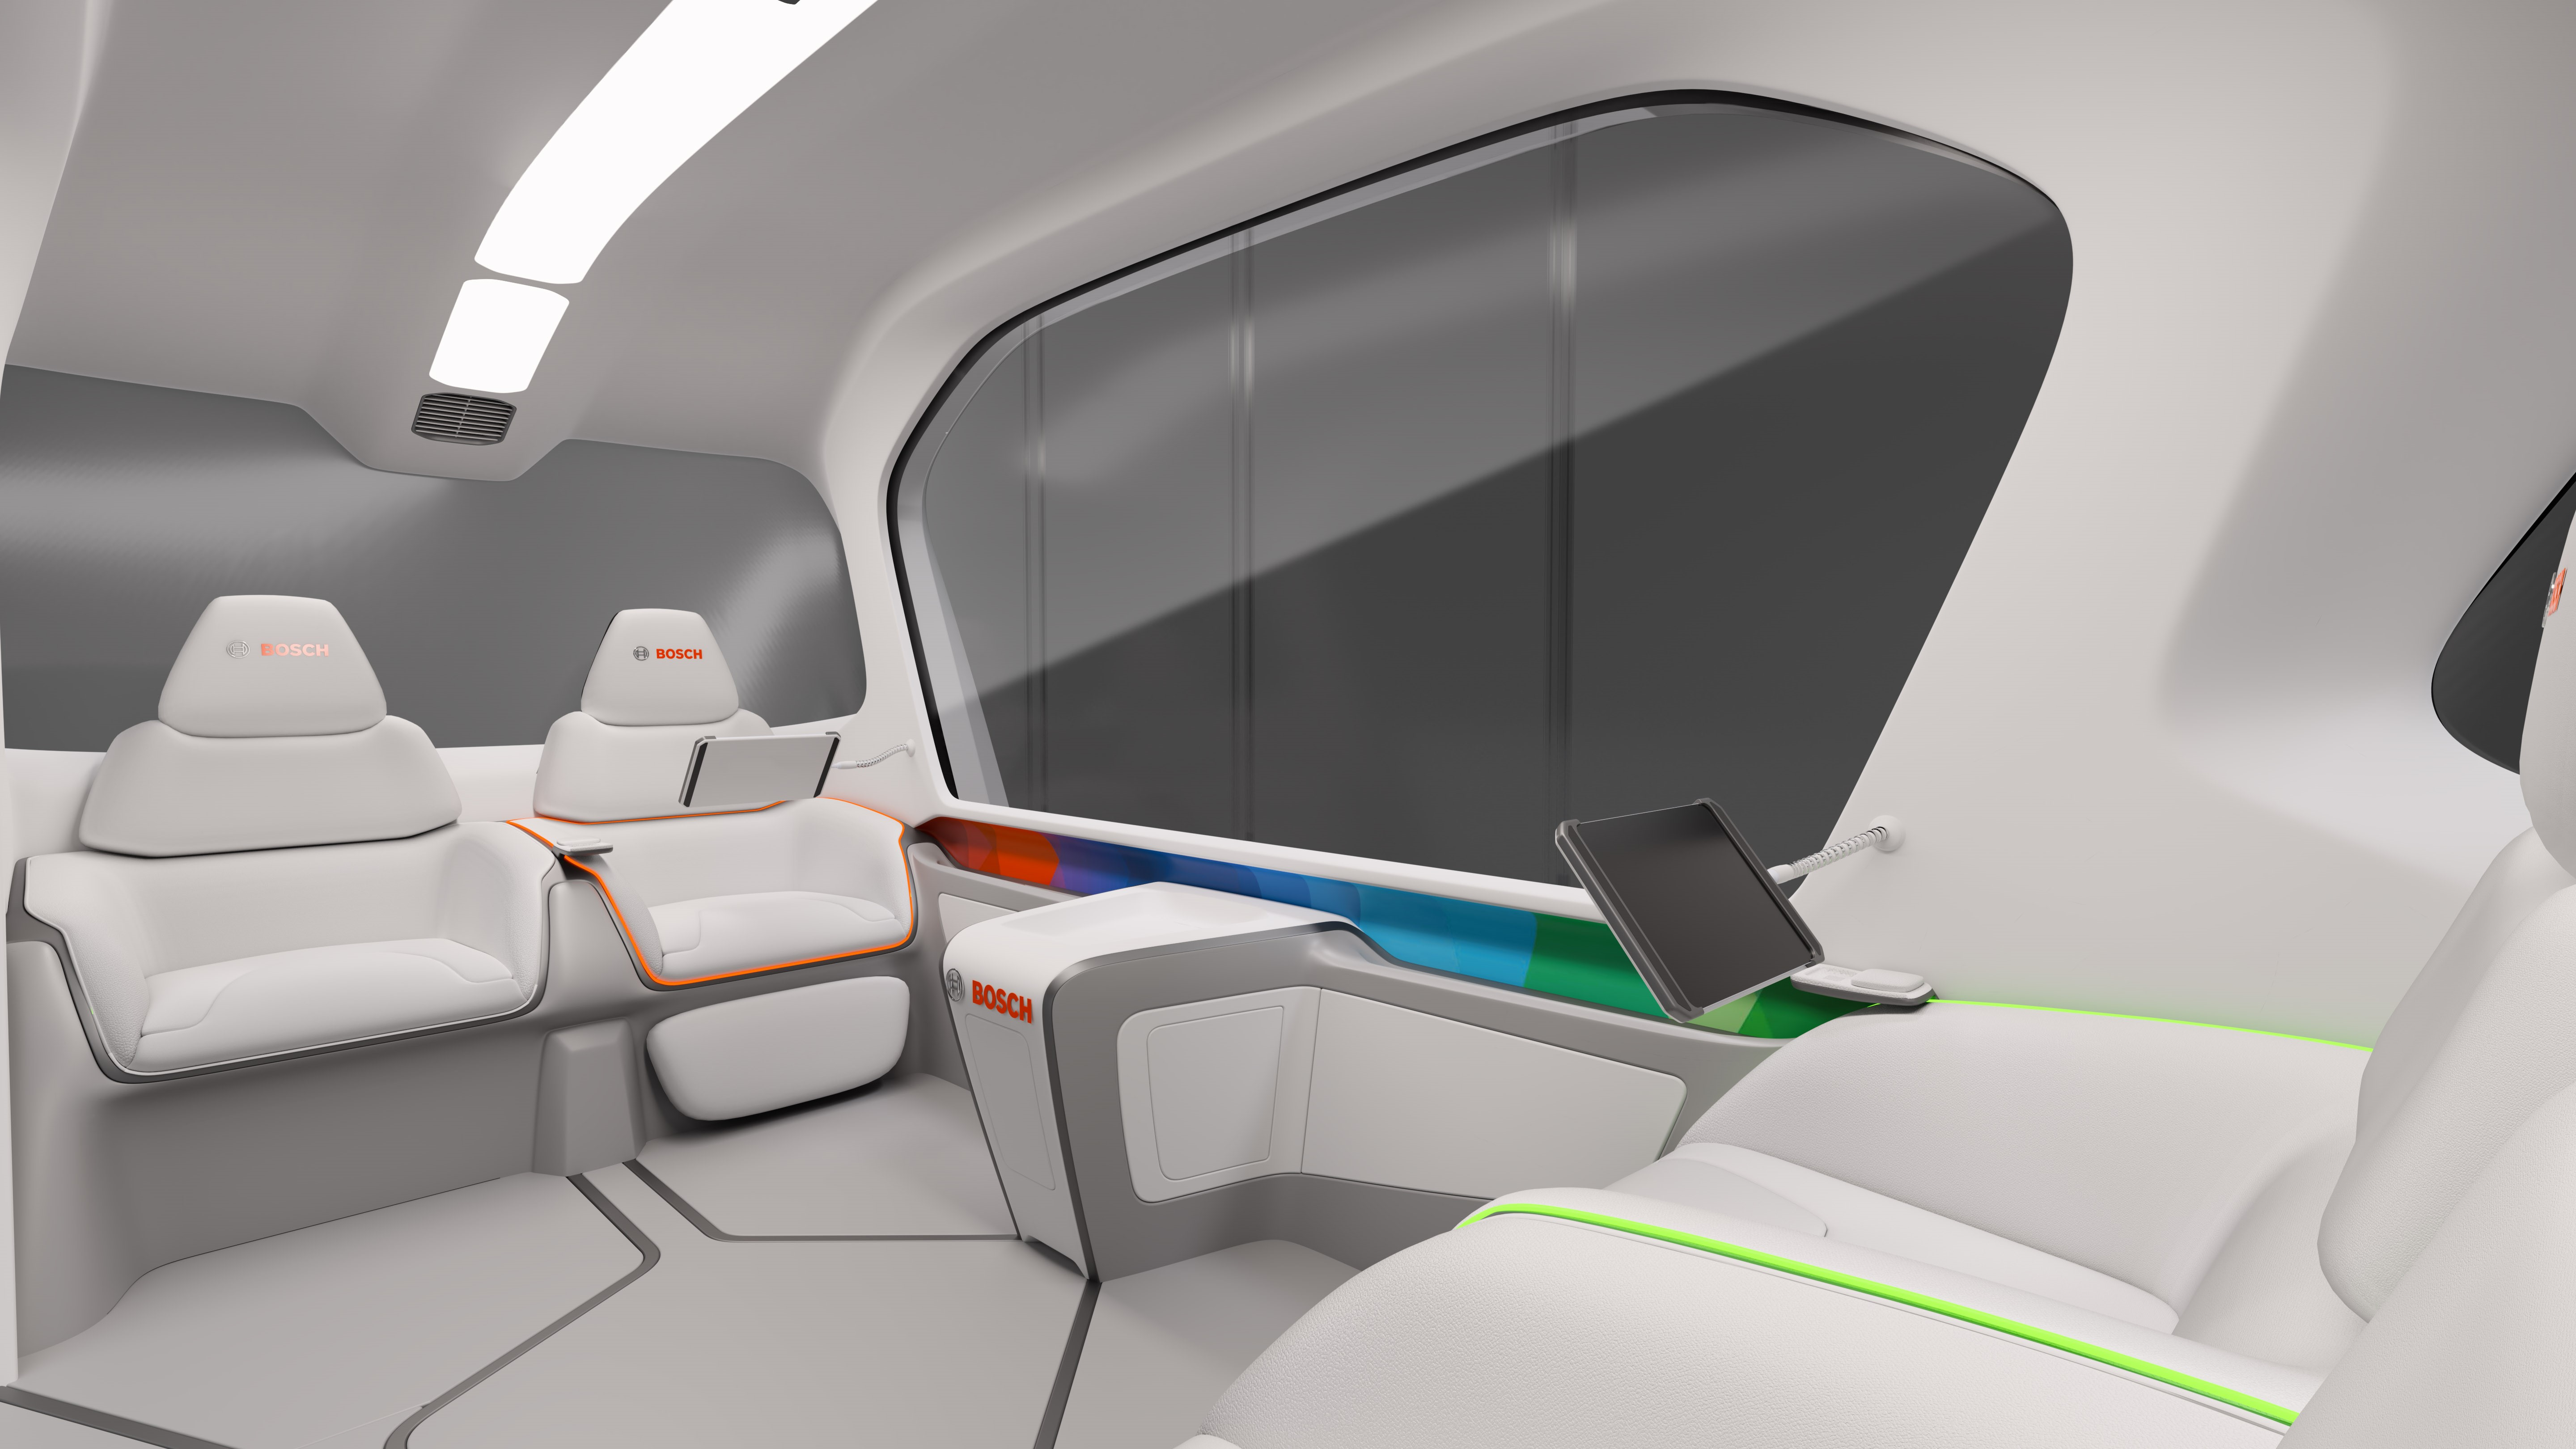 Debut of new concept shuttle at CES 2019 in Las Vegas